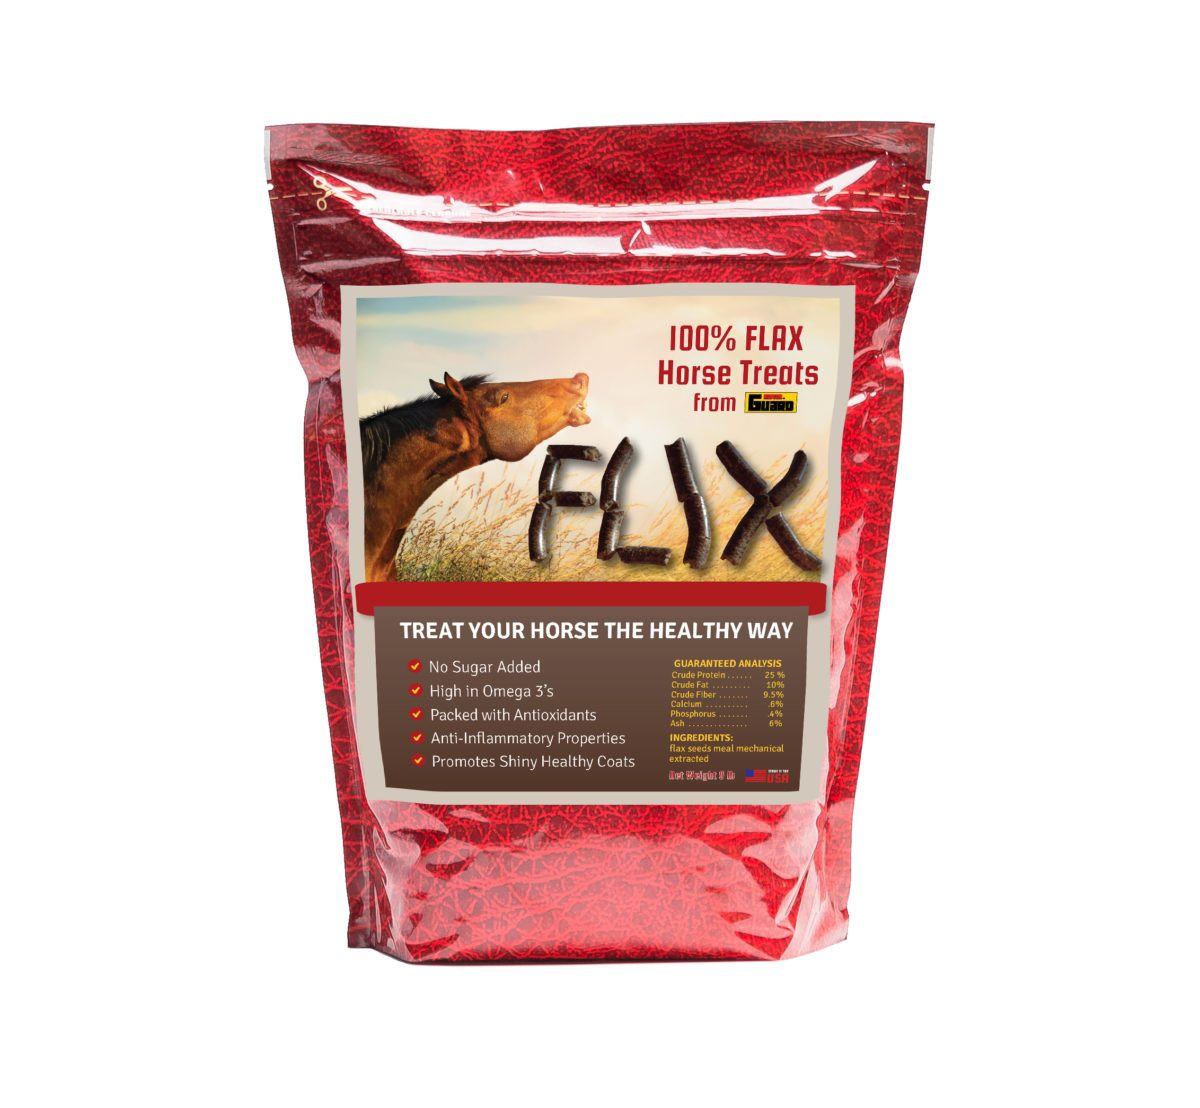 flax treats for horses